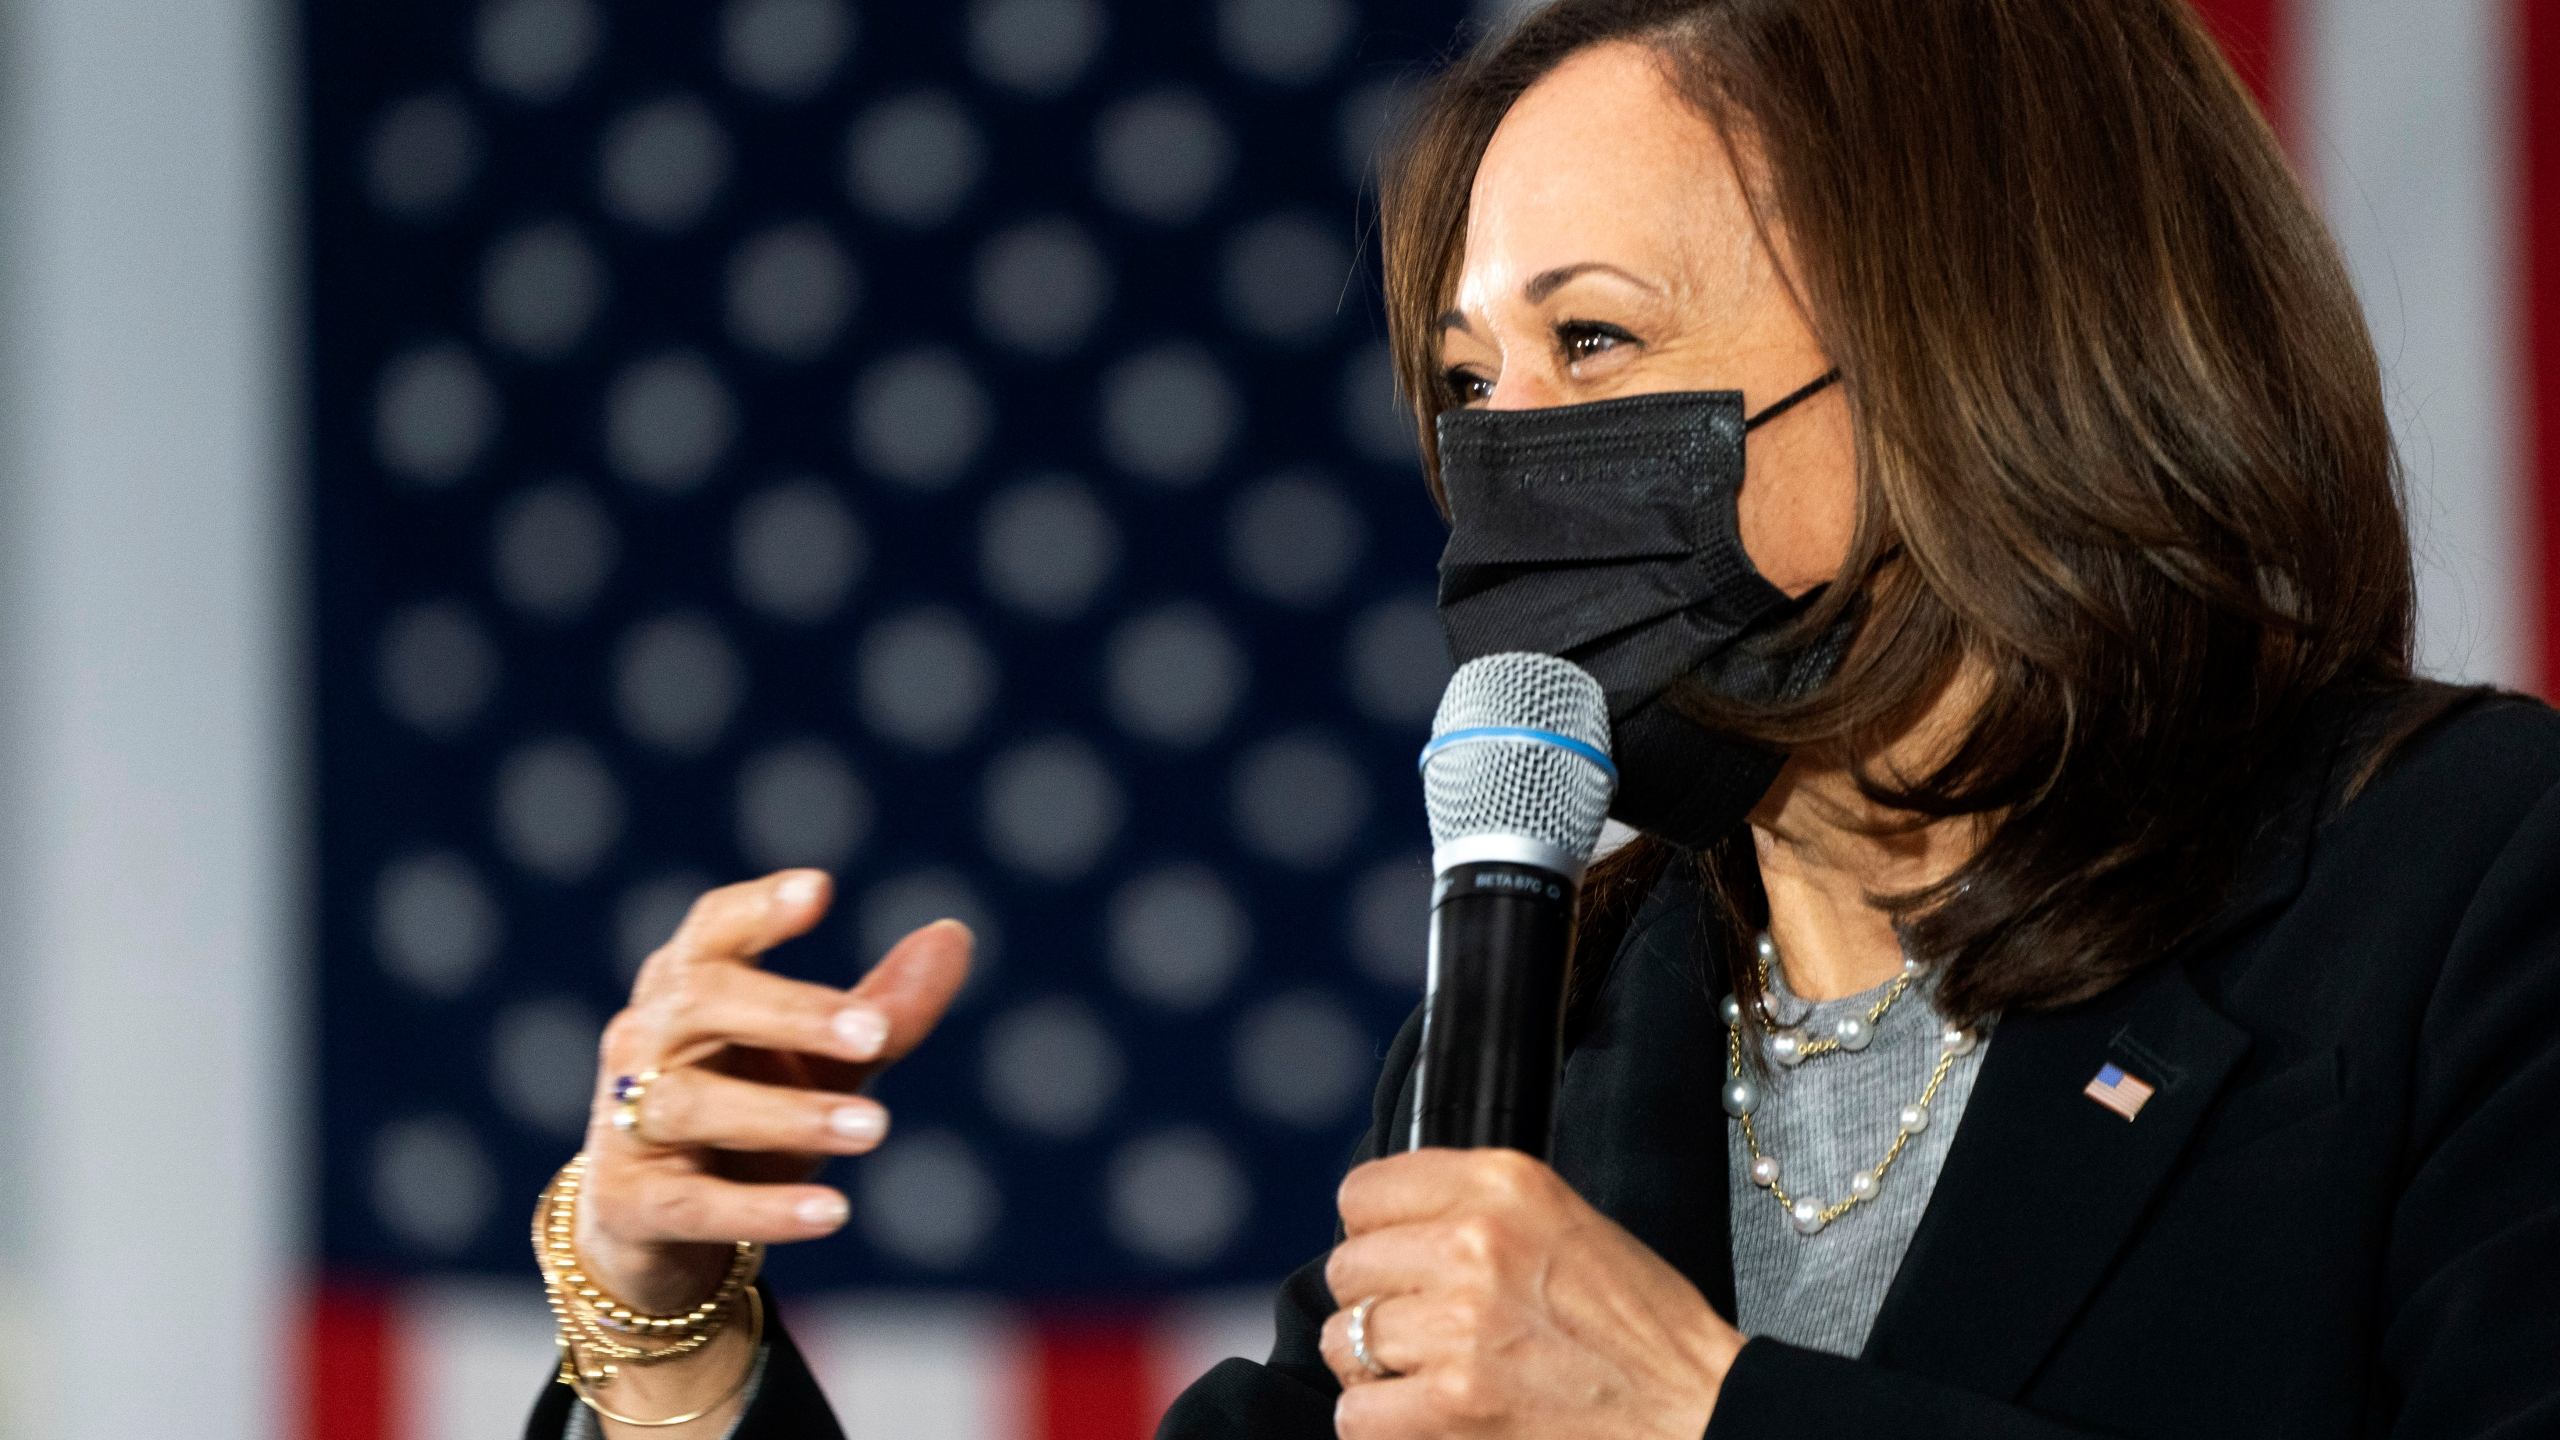 In this Friday, April 23, 2021, file photo, Vice President Kamala Harris speaks at the IBEW Training Center in Concord, N.H. (AP Photo/Jacquelyn Martin, File)